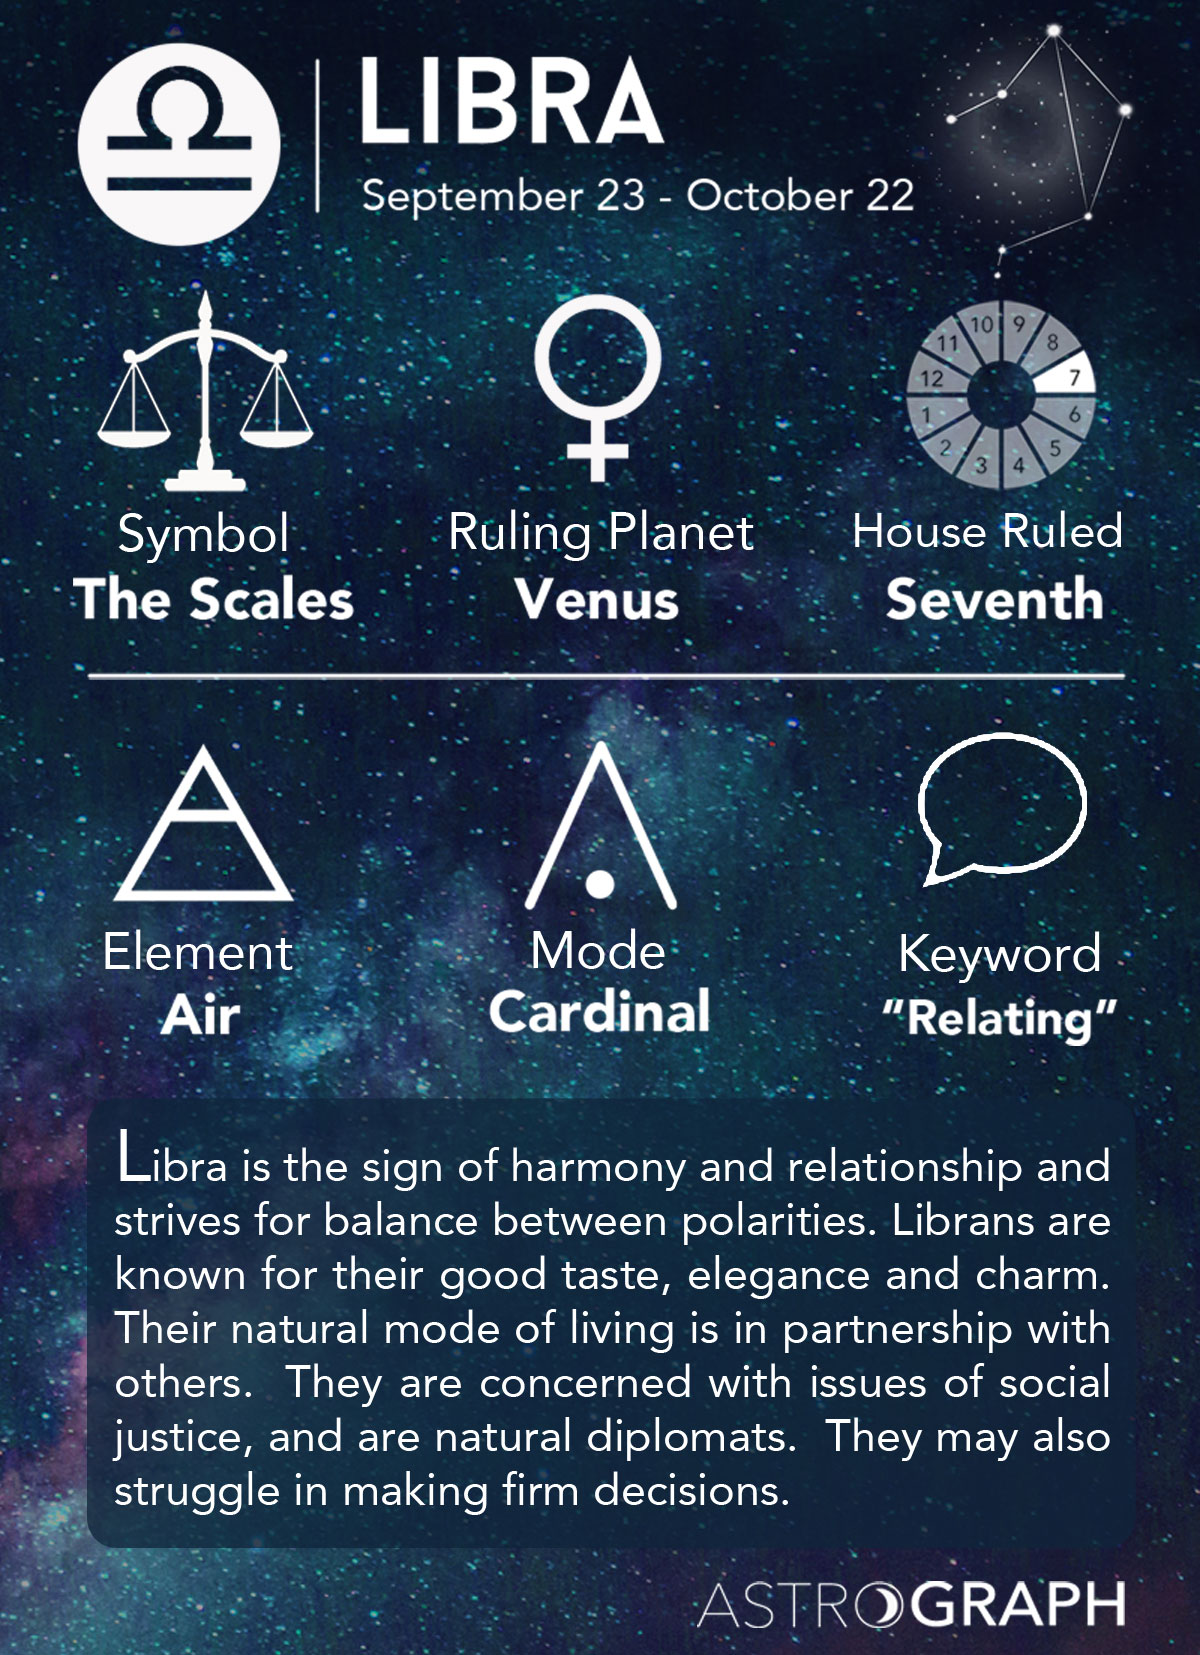 What Is The Zodiac Sign For Libra